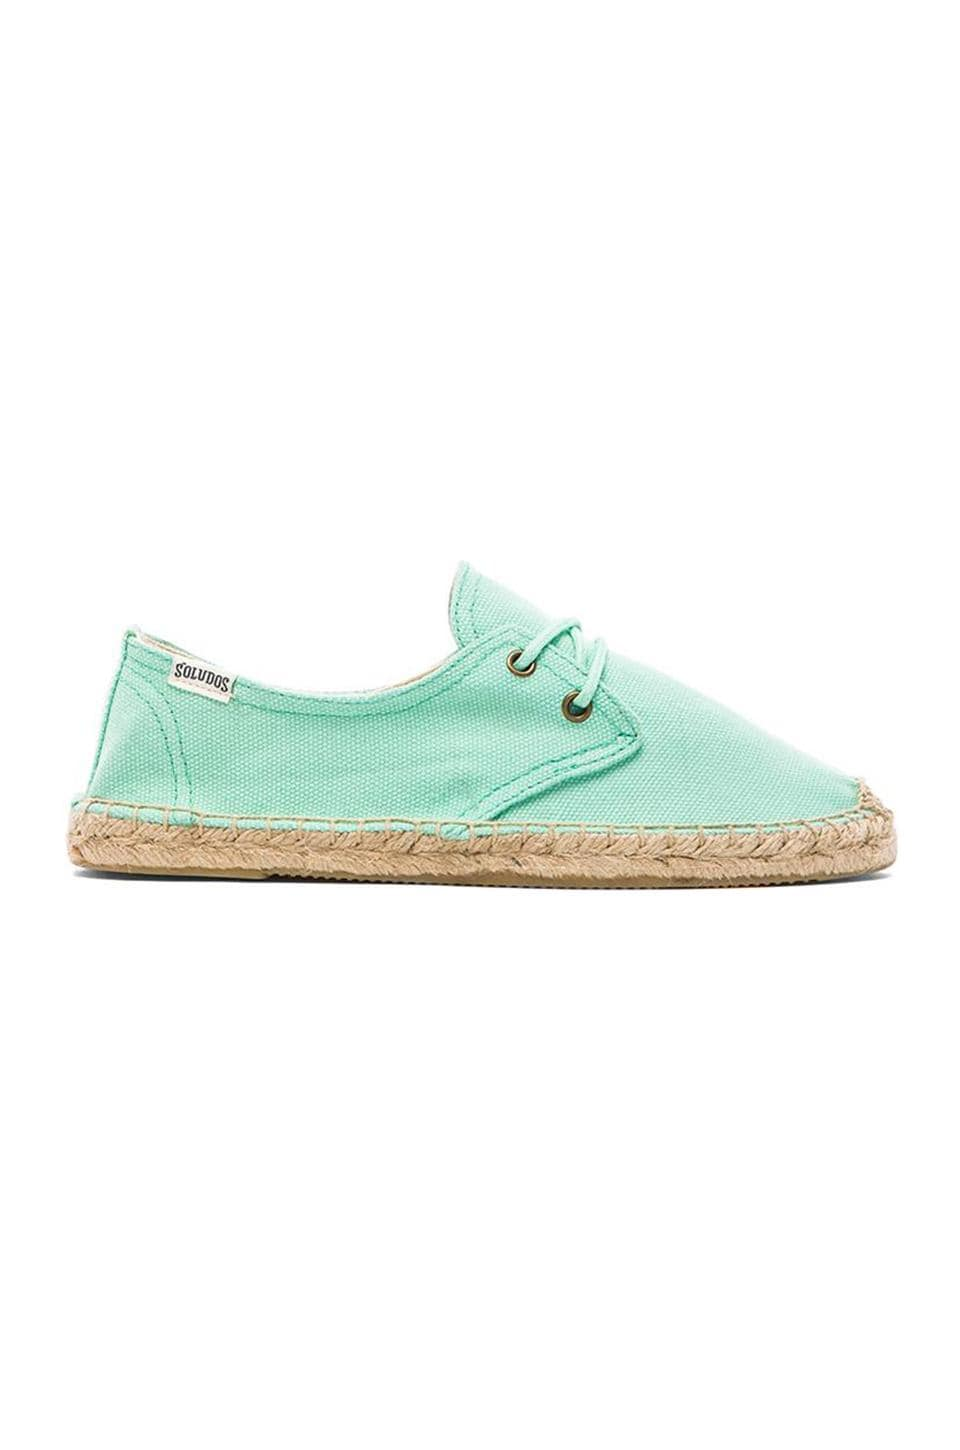 Soludos Derby Lace Up in Aqua